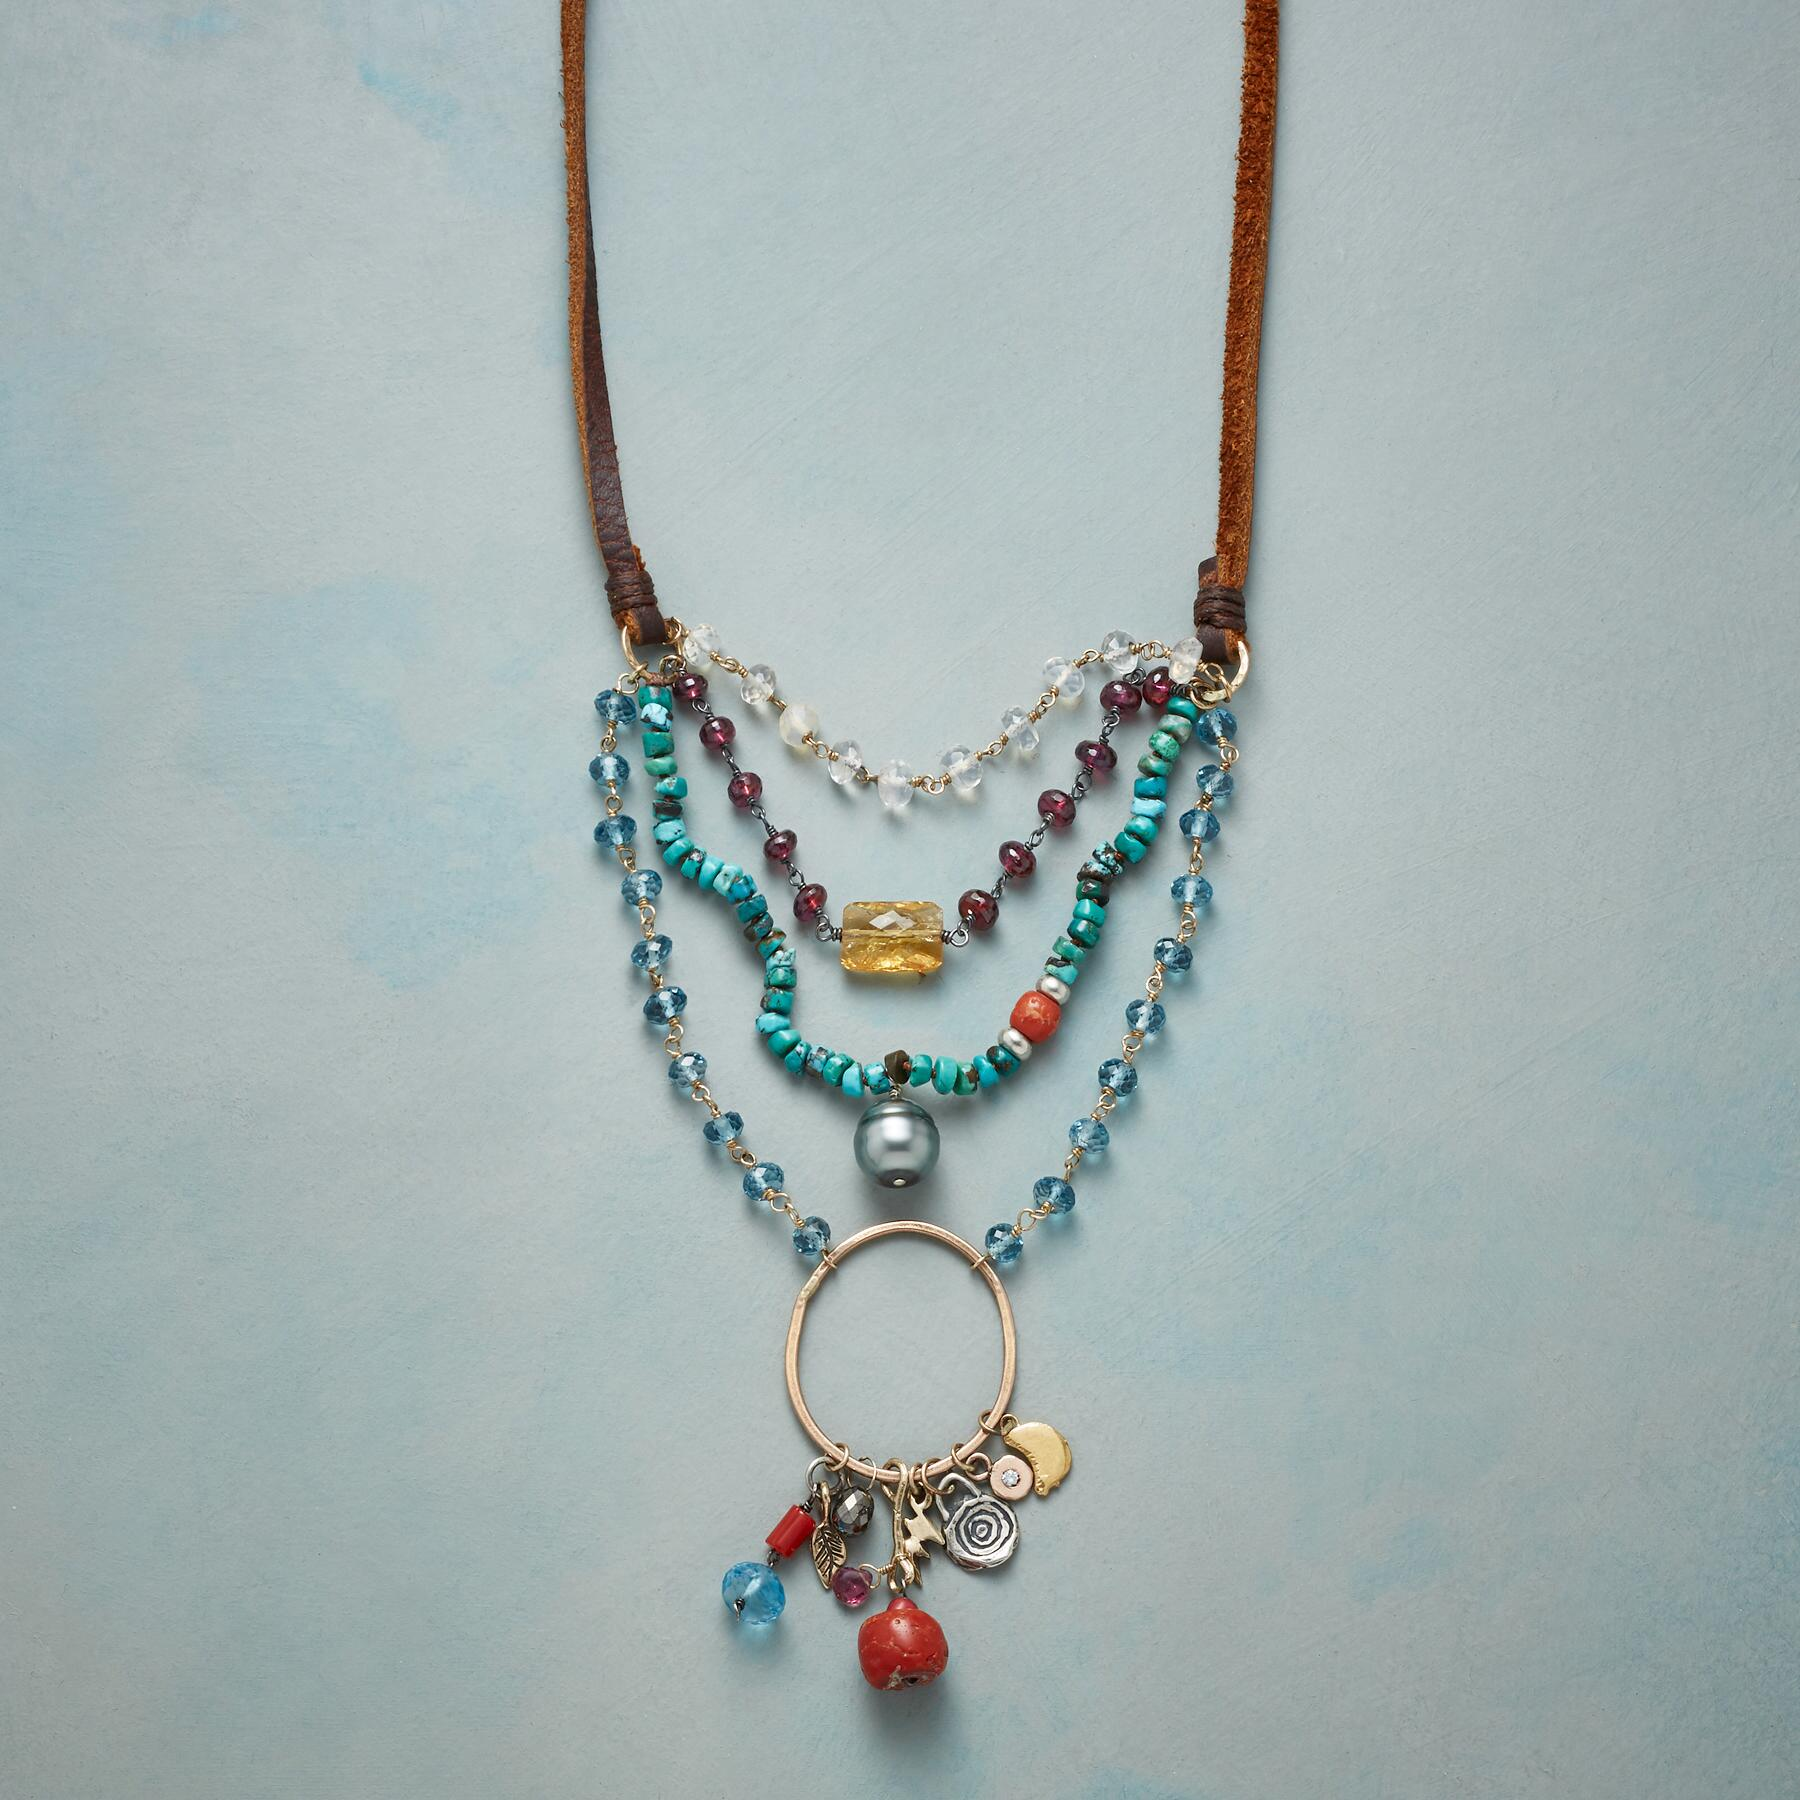 MASTERPIECE NECKLACE: View 1